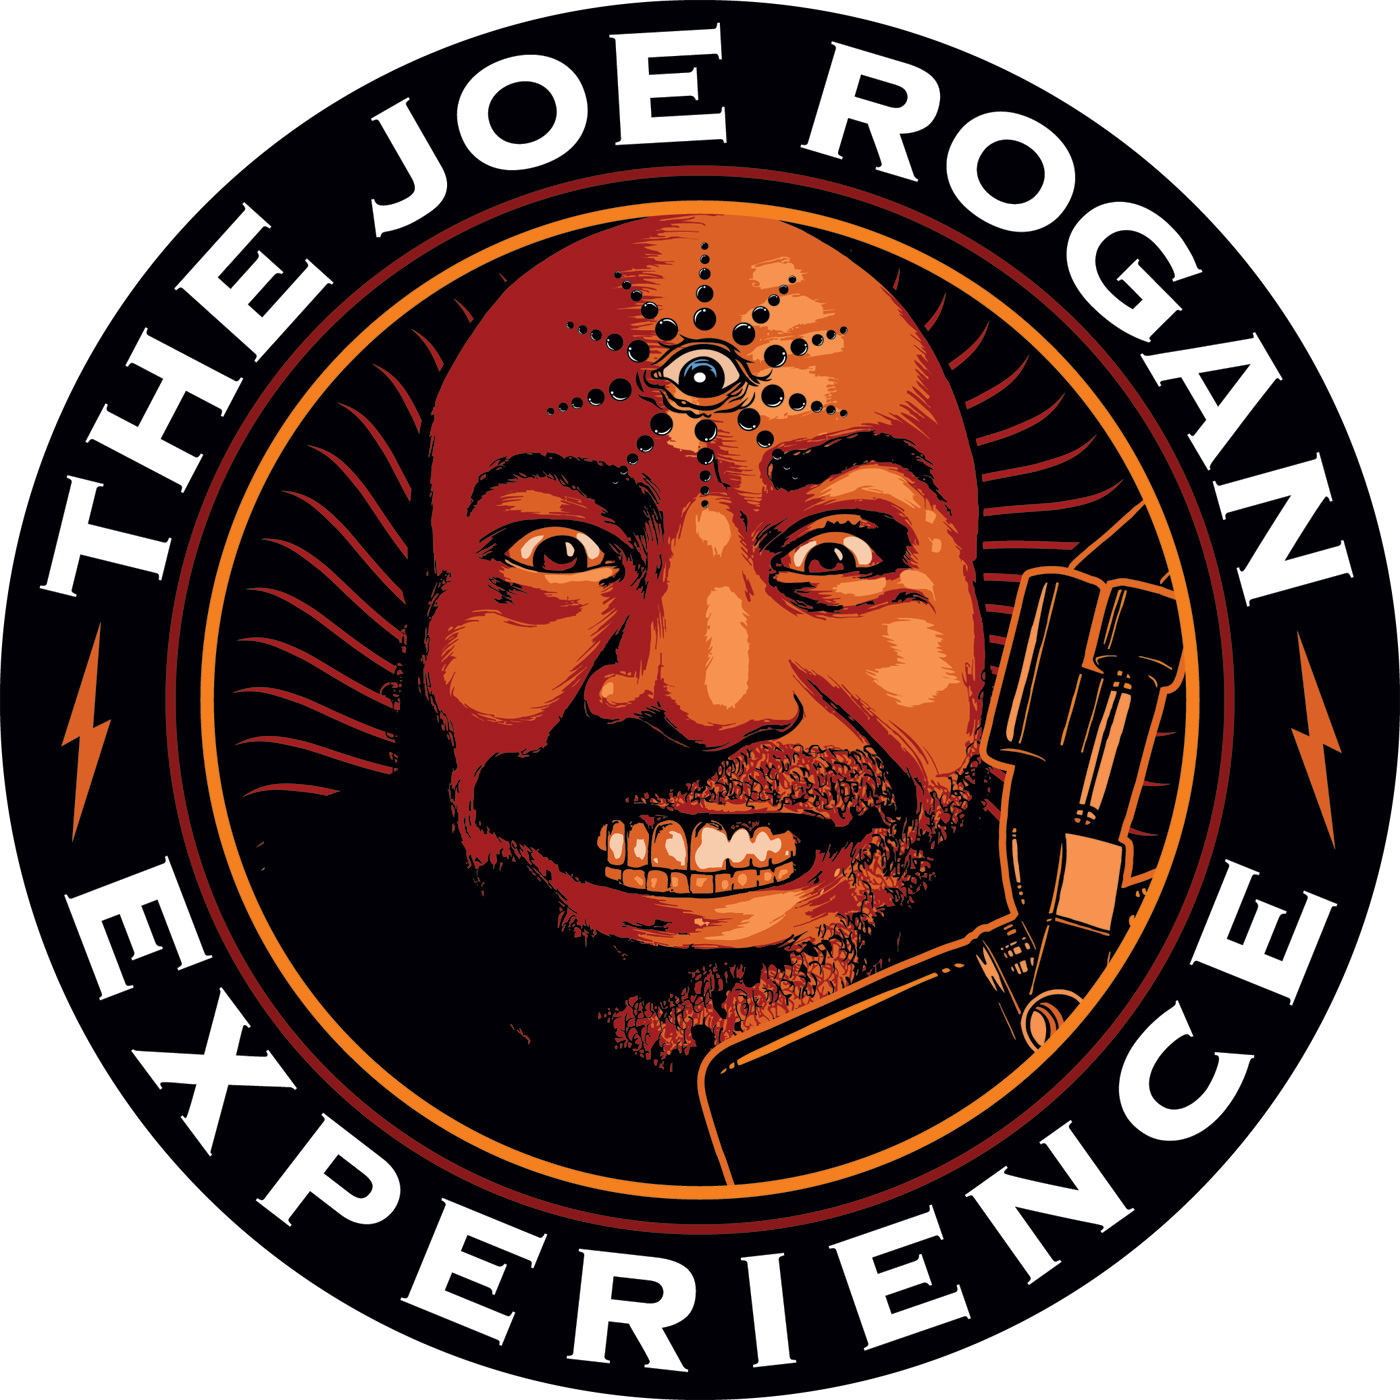 The Joe Rogan Experience Fight Companion - January 14, 2018